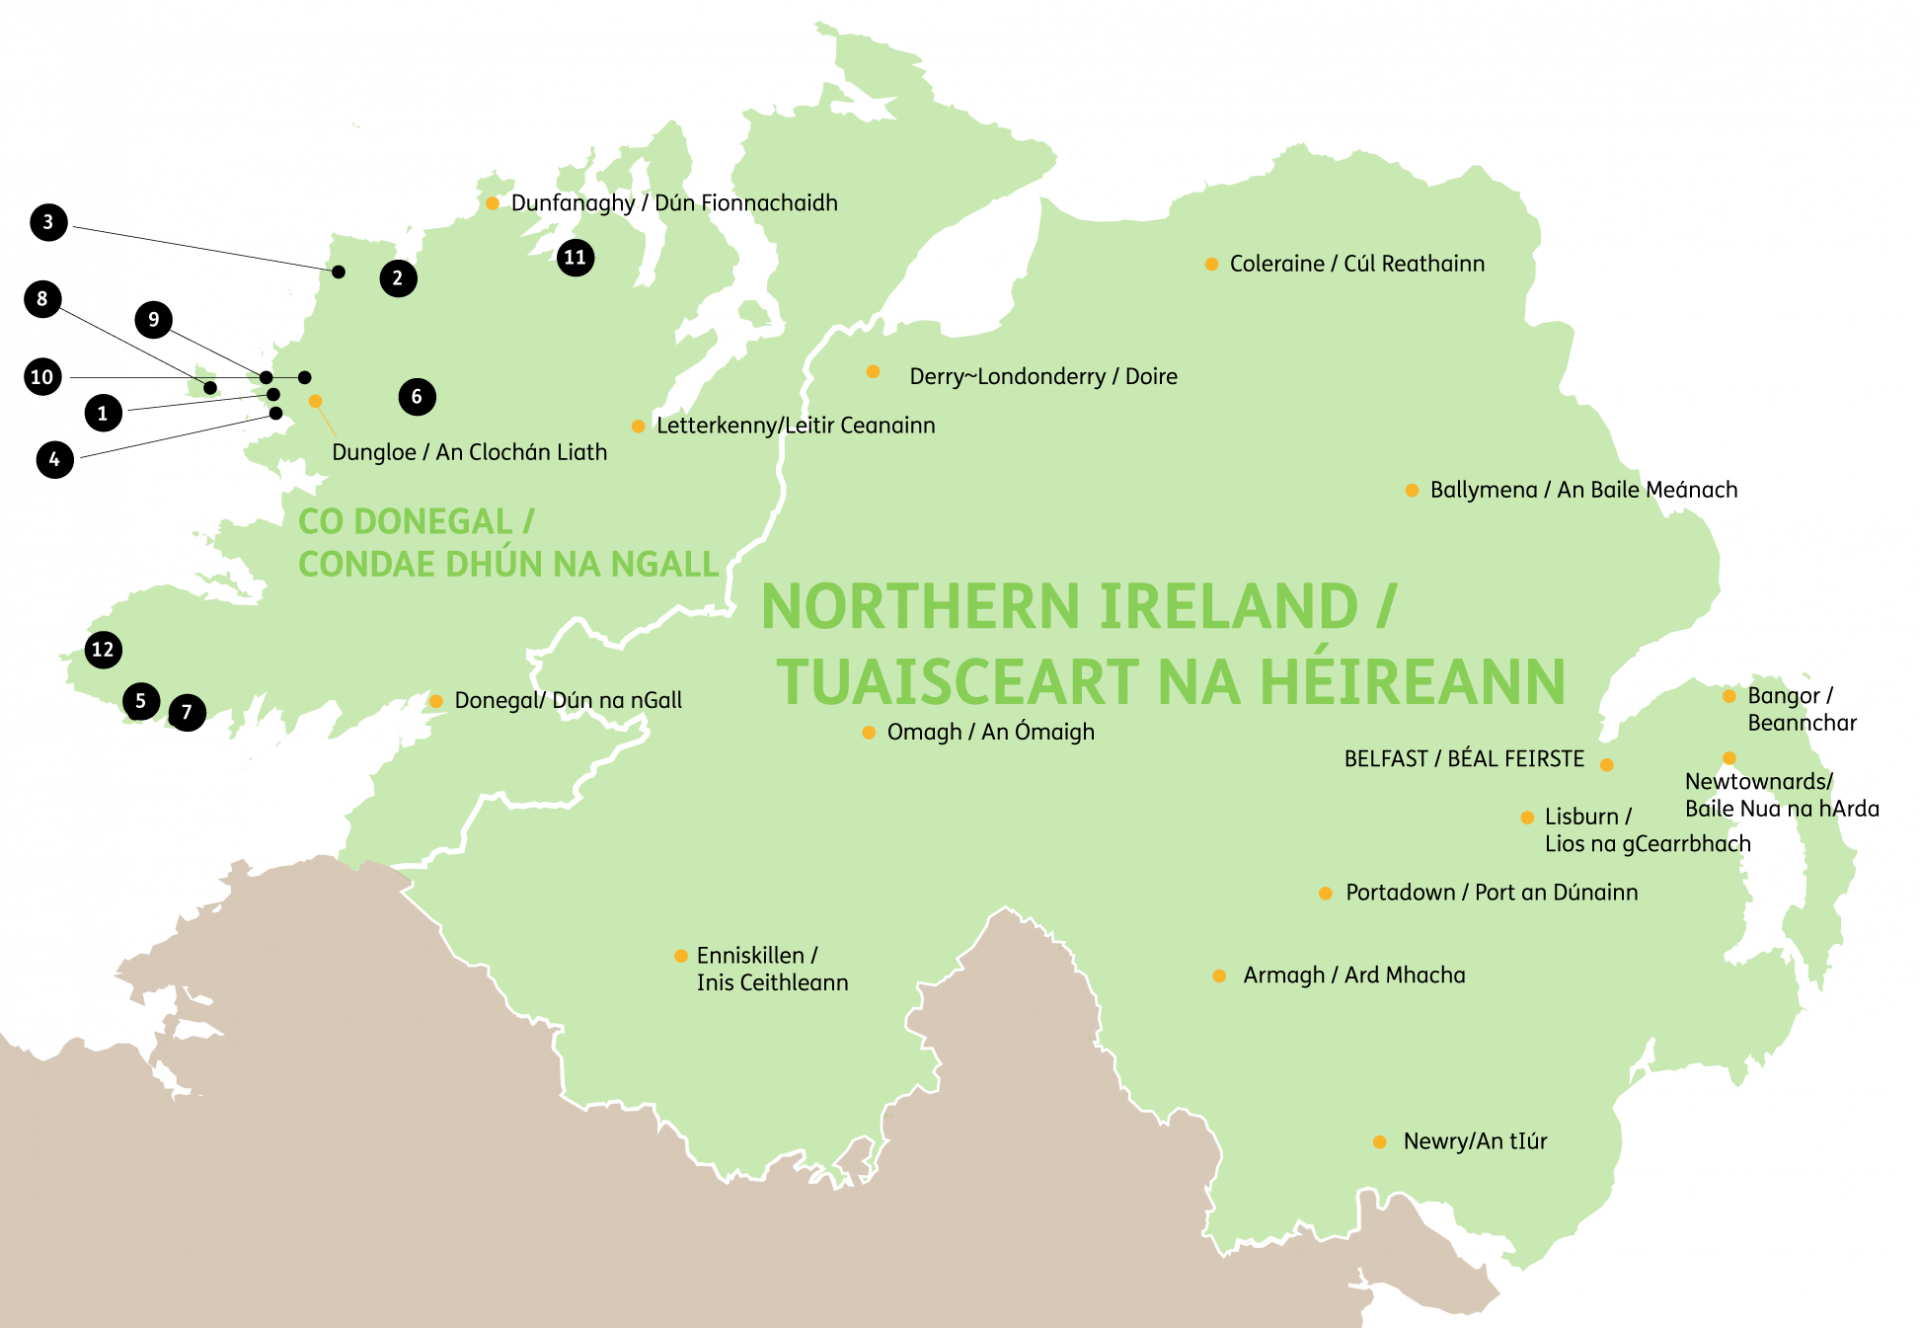 About the Gaeltacht | Líofa on map of canaan, map of kish, map of napata, map of uruk, map of sumer, map of akkad, map of bethel, map of harran, map of memphis, map of assyria, map of ra, map of babylon, map of baghdad, map of thebes, map of re, map of nineveh, map of uz, biblical map ur, map of mesopotamia, map of gl,